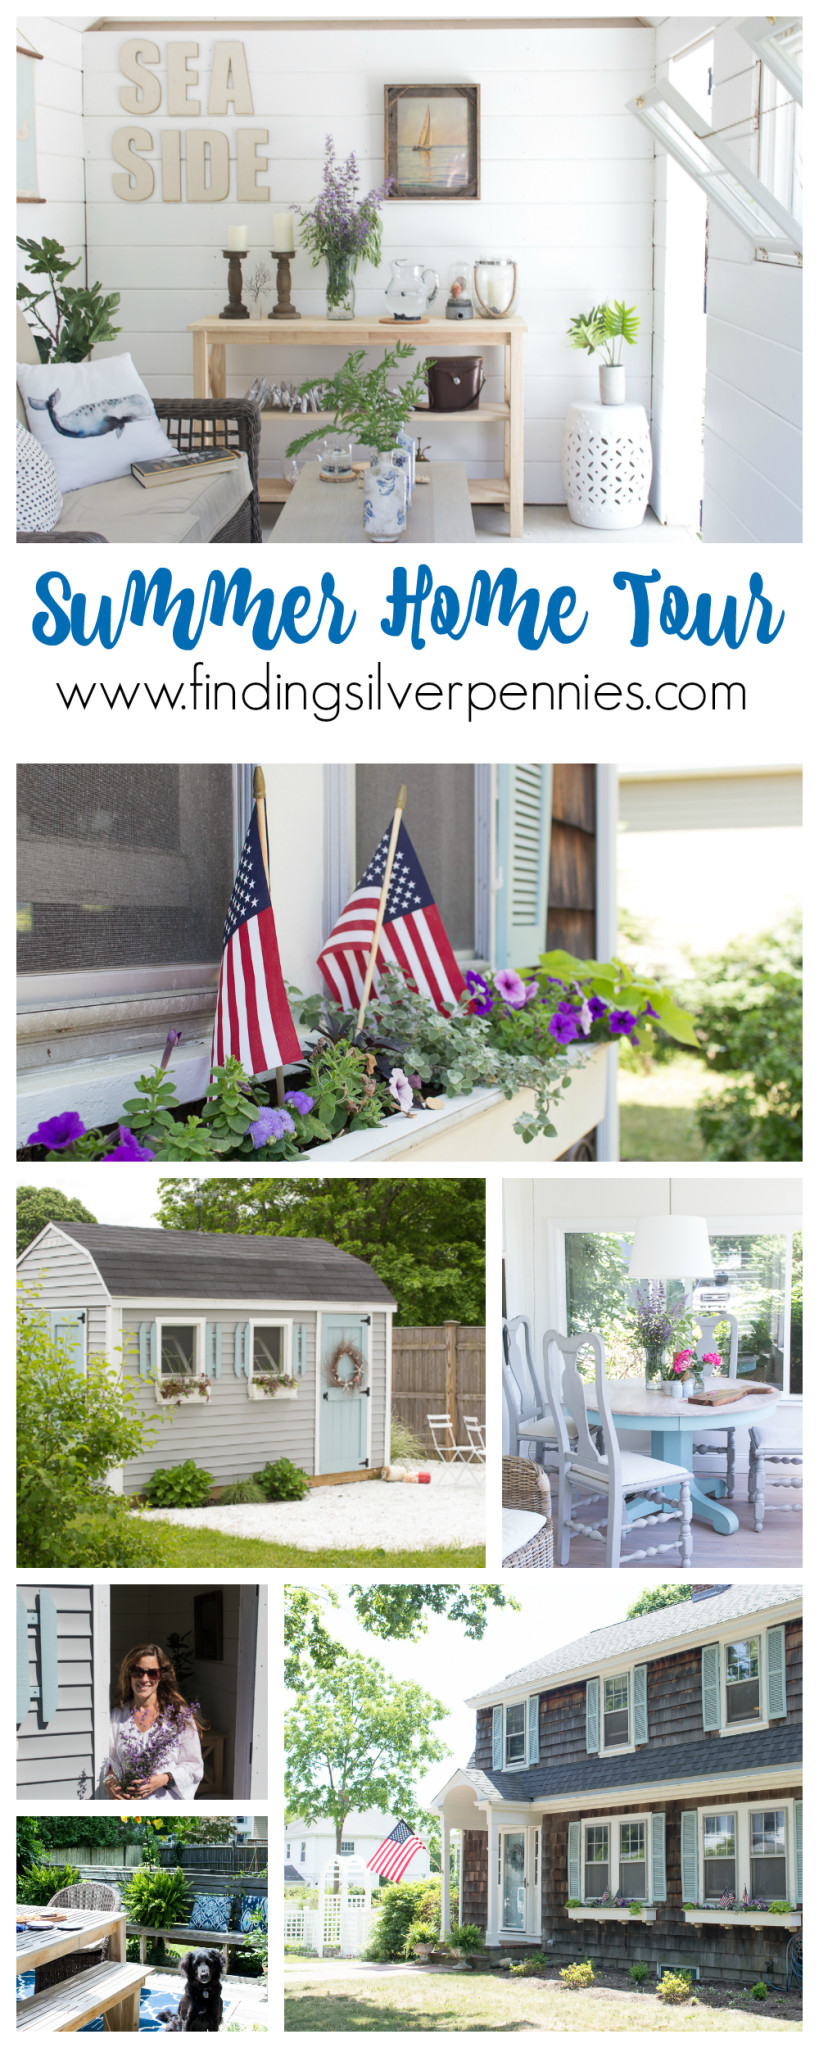 Summer Home Tour Finding Silver Pennies